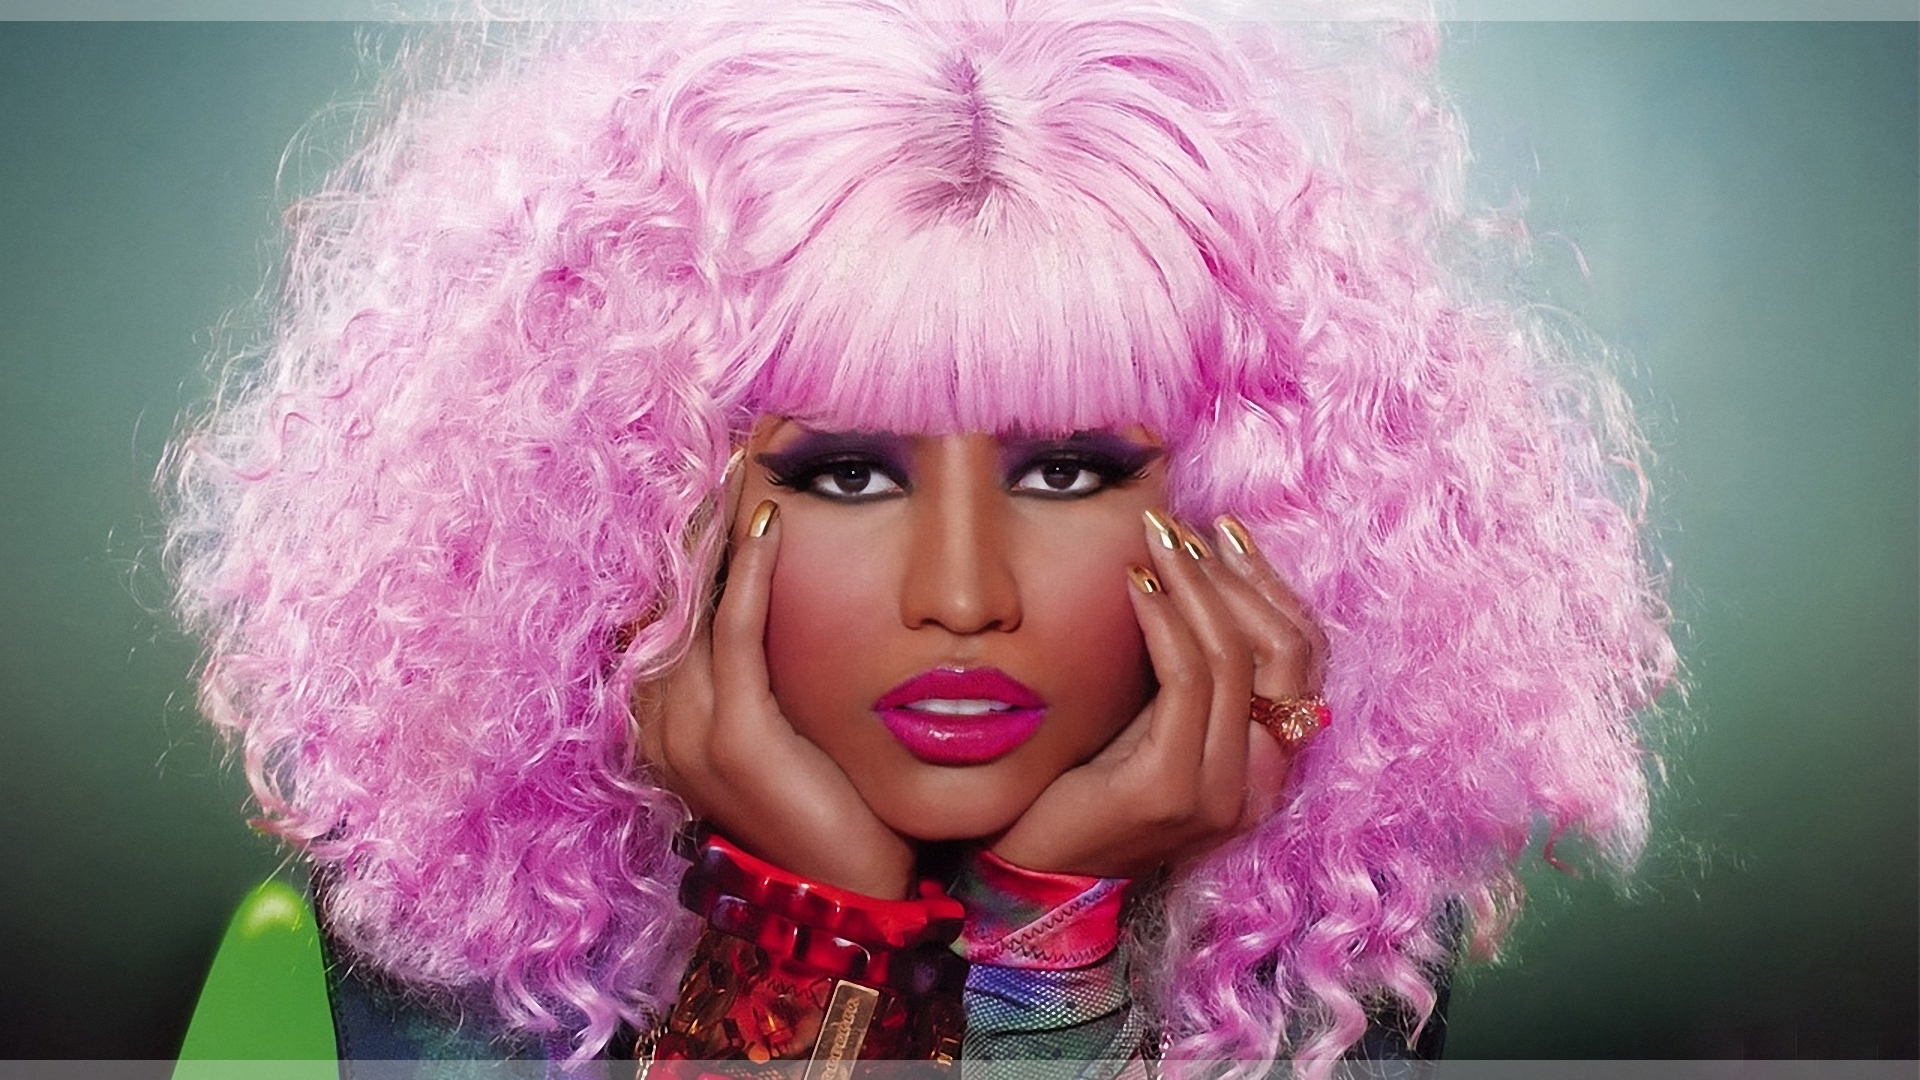 Nicki Minaj Desktop Wallpapers   Wallpaper High 1920x1080